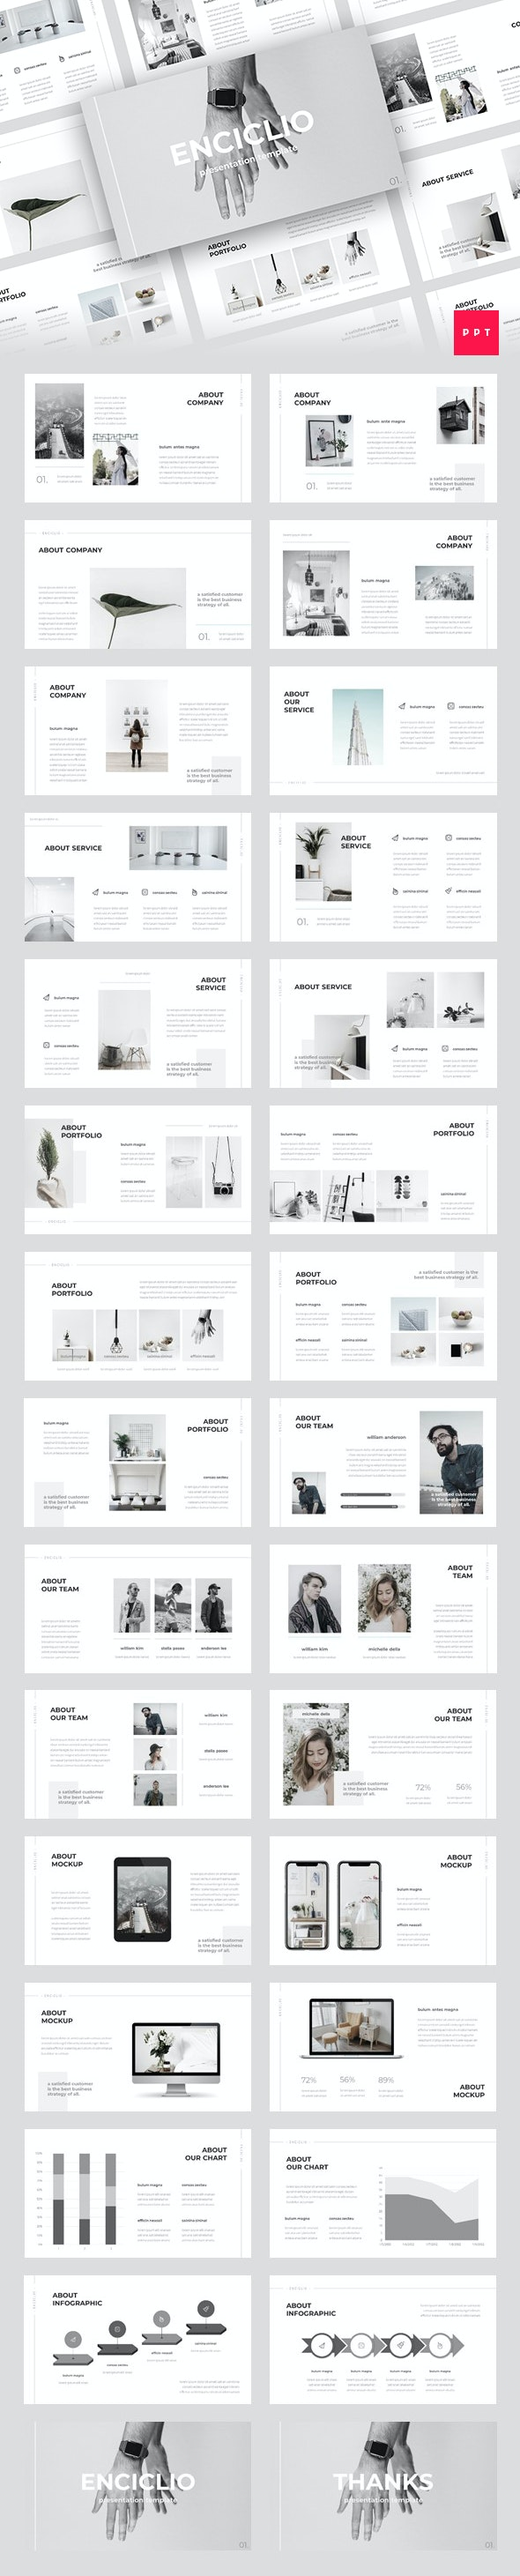 Enciclio - Creative PowerPoint Template - Creative PowerPoint Templates